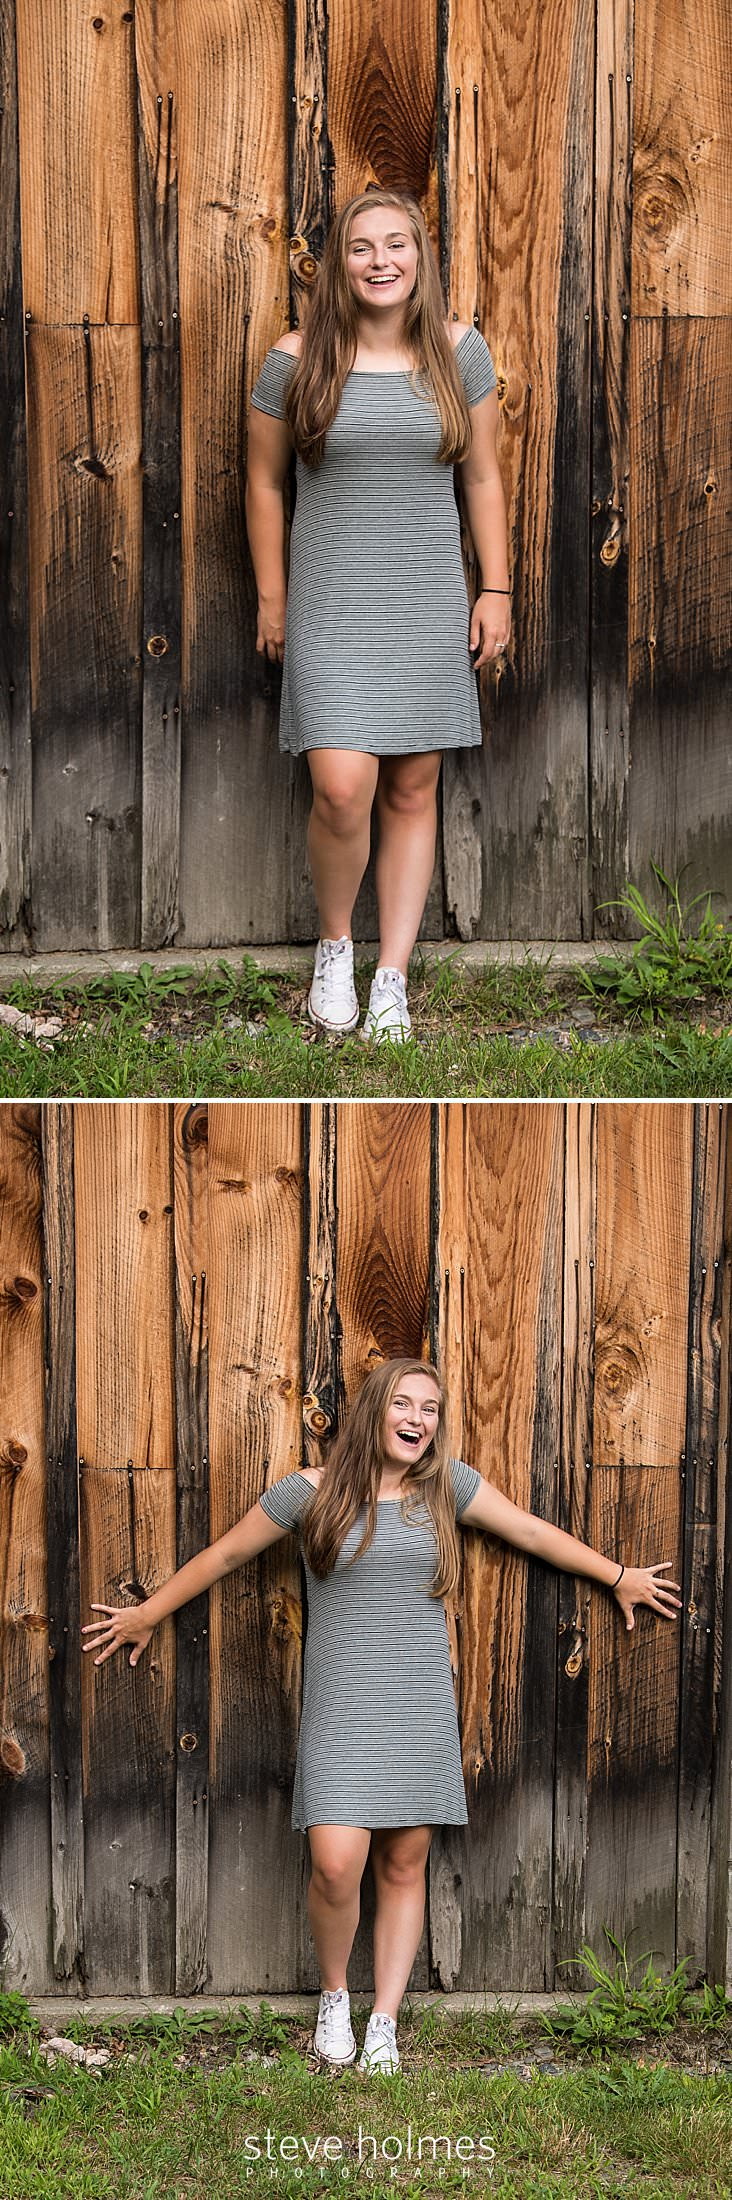 12_Teen girl in grey striped dress and converse sneakers leans against barn wall.jpg